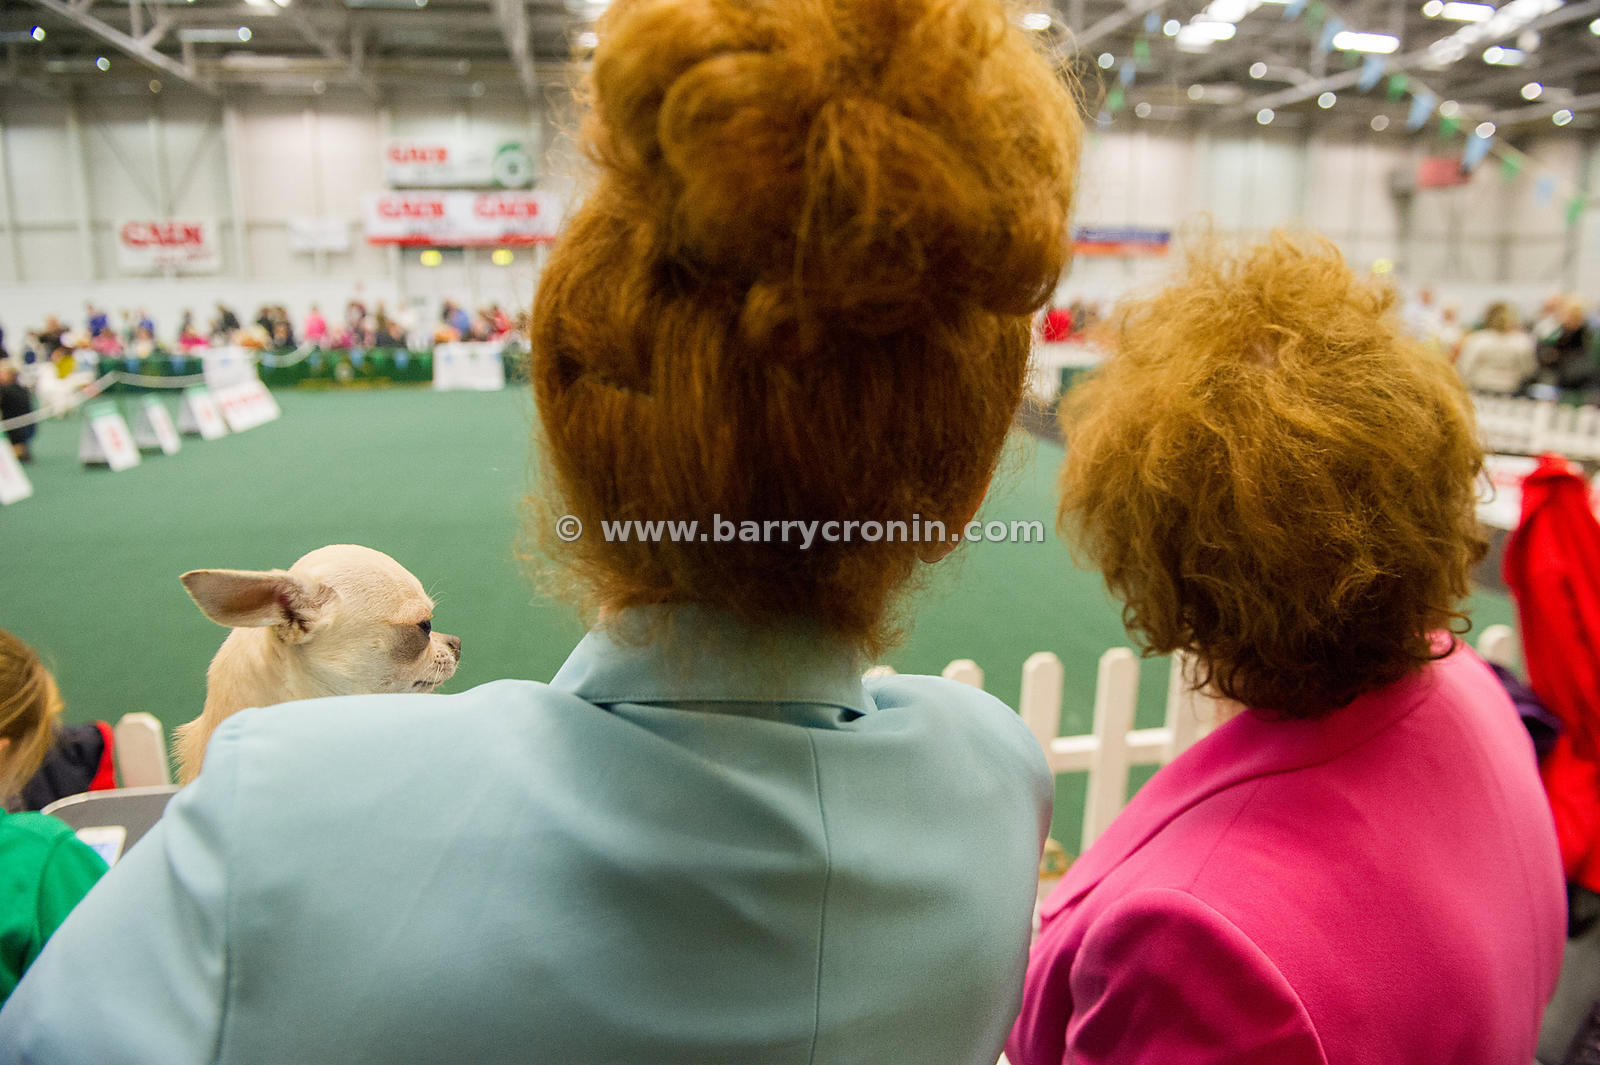 5th October, 2014.IKC (Irish Kennel Club) International show at Cloghran, Dublin. Pictured is Mateo, a Chihuaha from Northern...